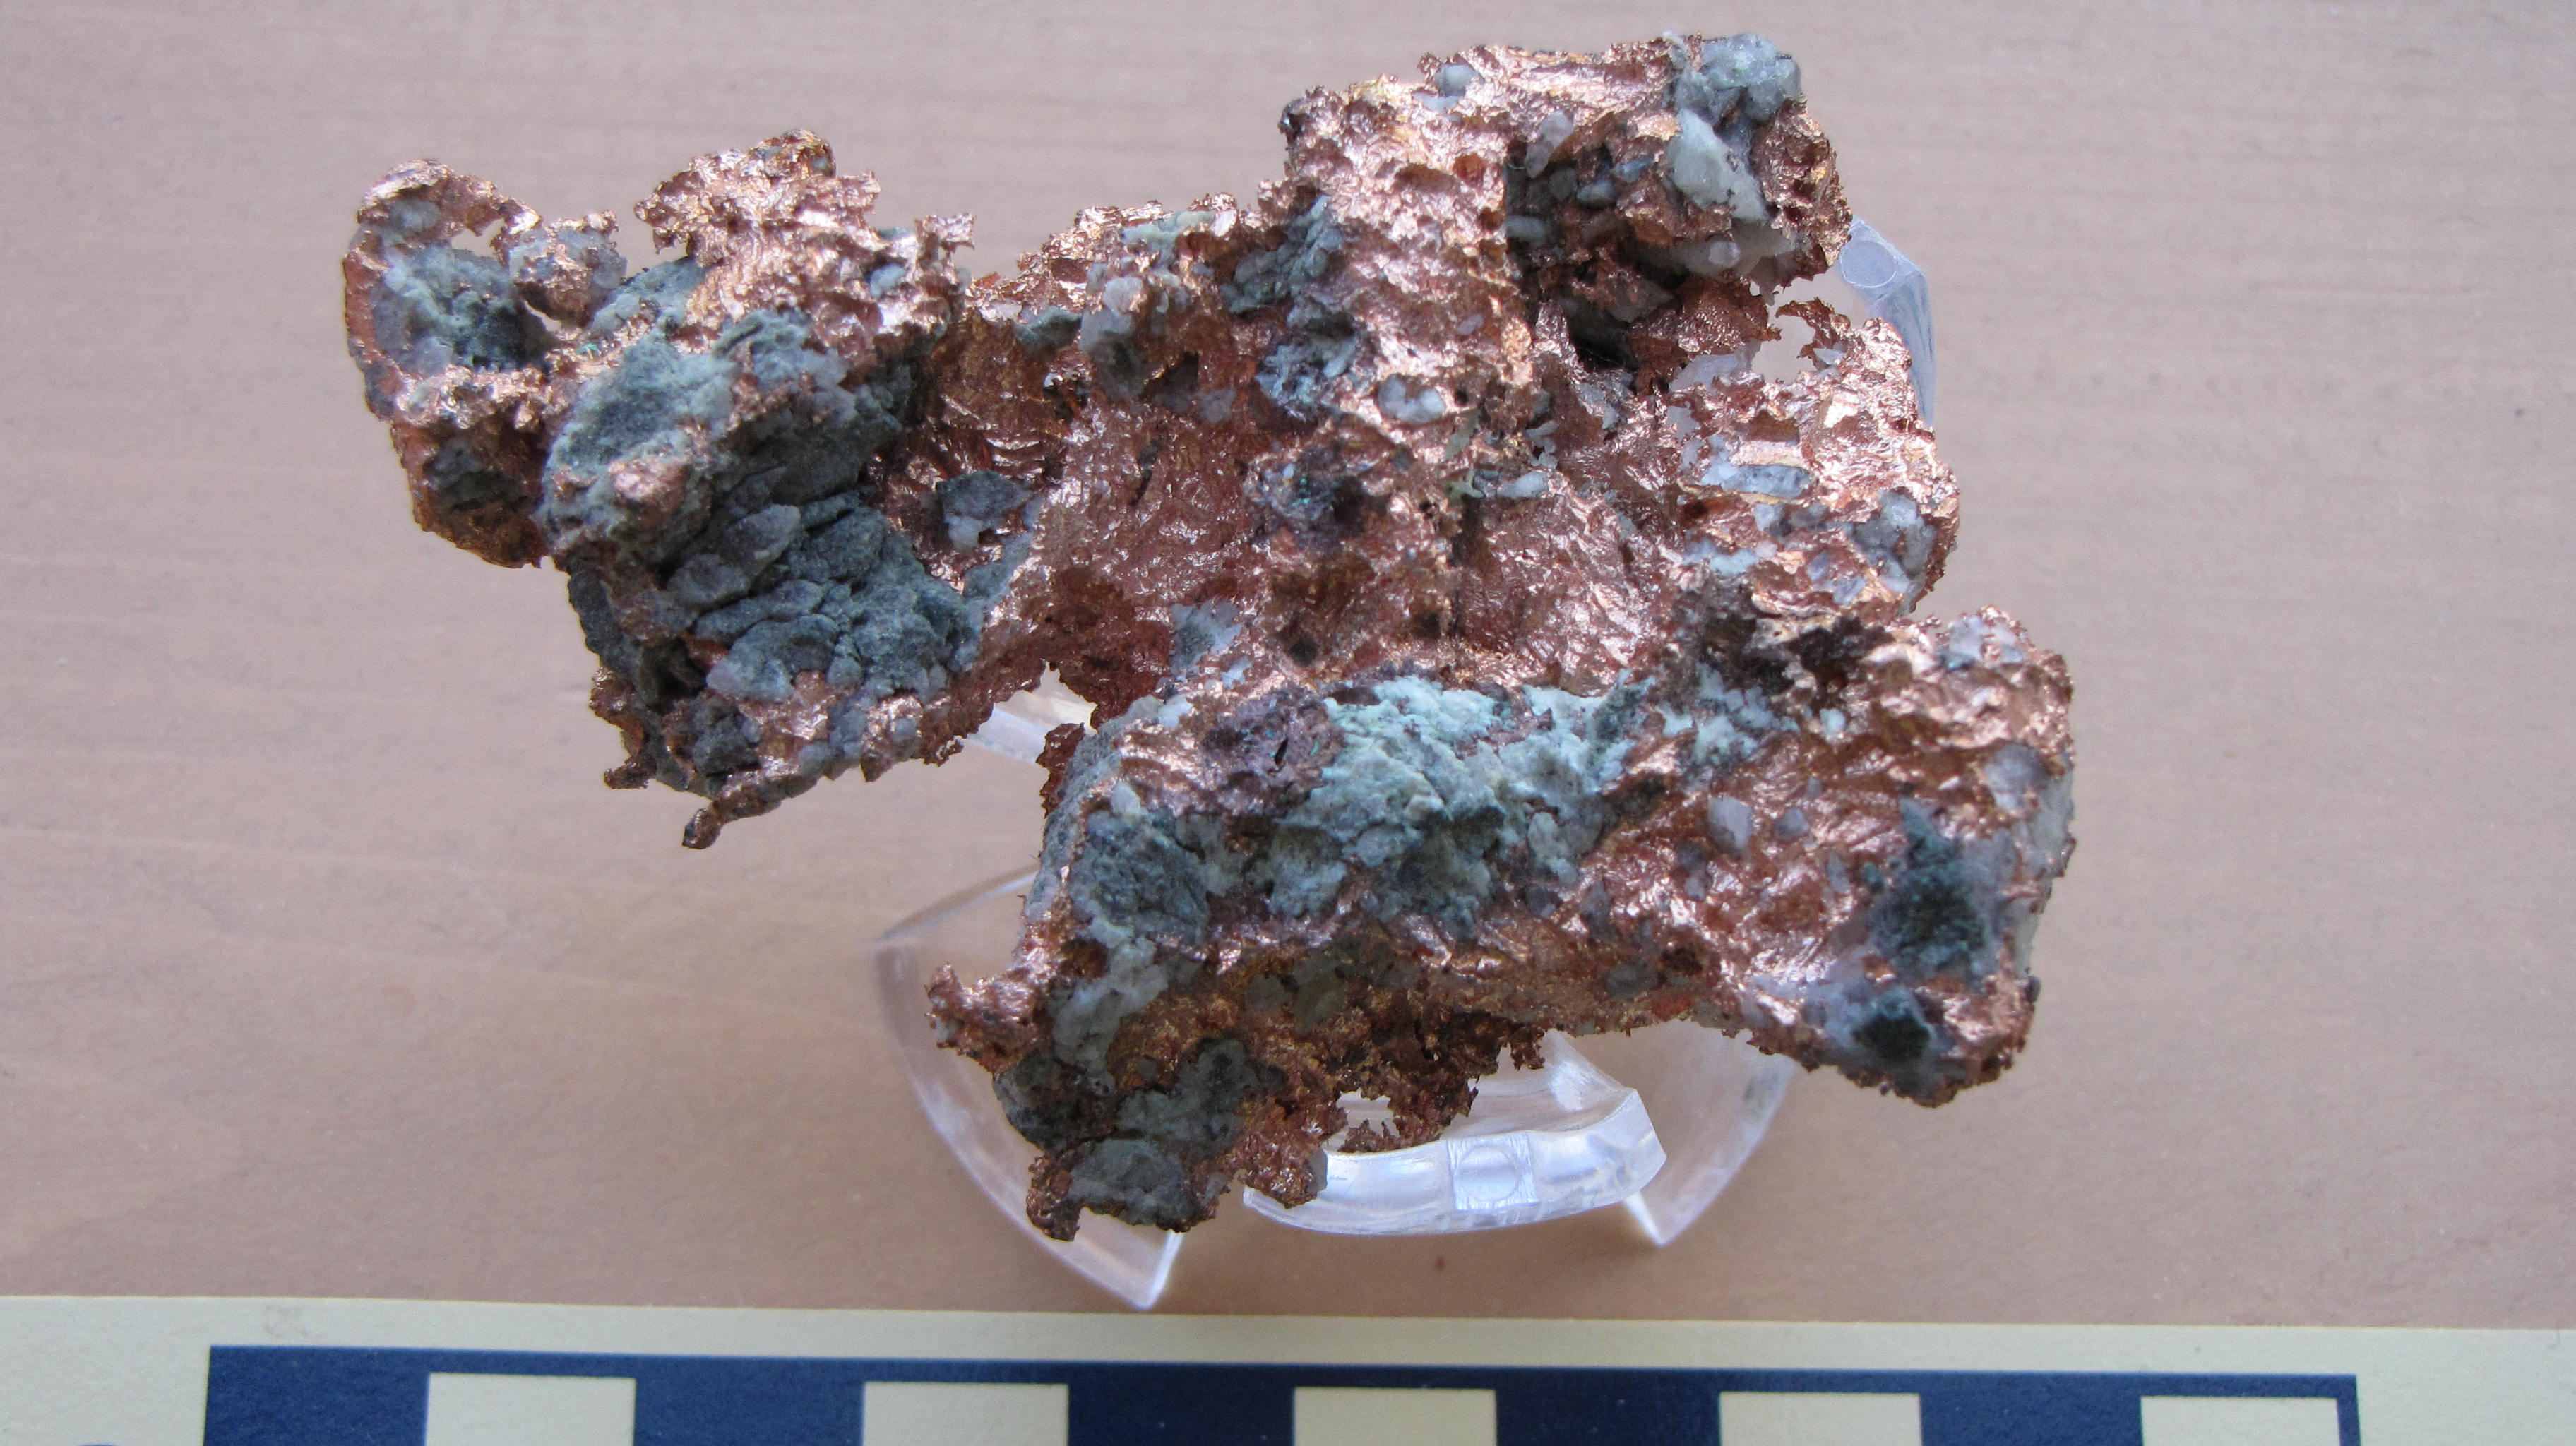 Native Copper - scale in cm